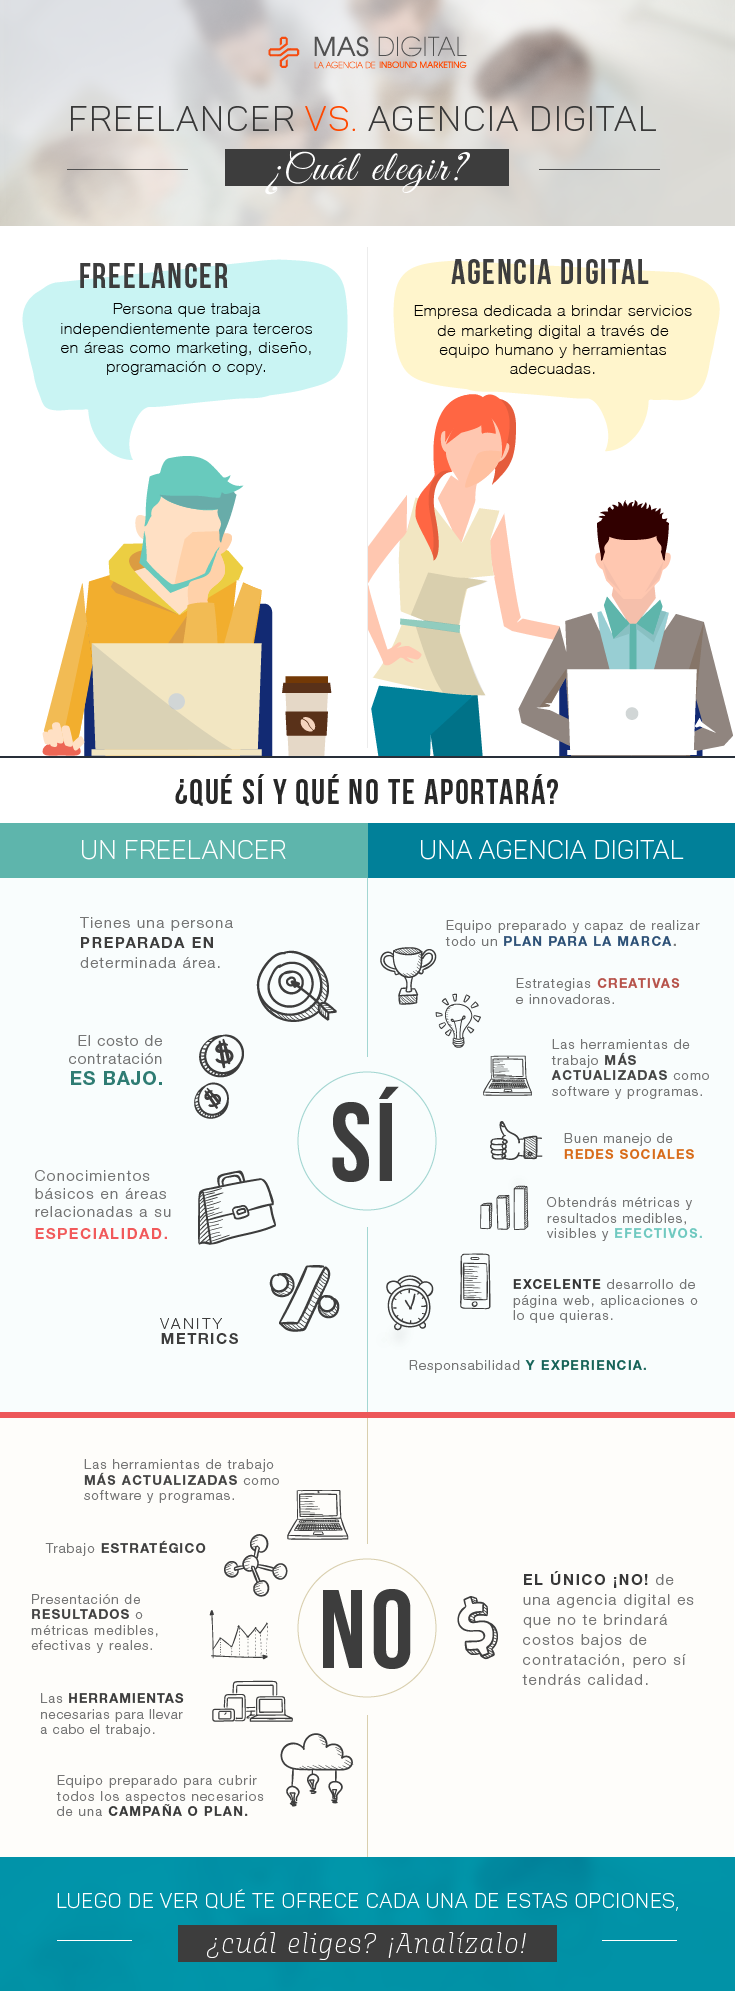 Freelancer_vs_agencia_digital_correcto.png